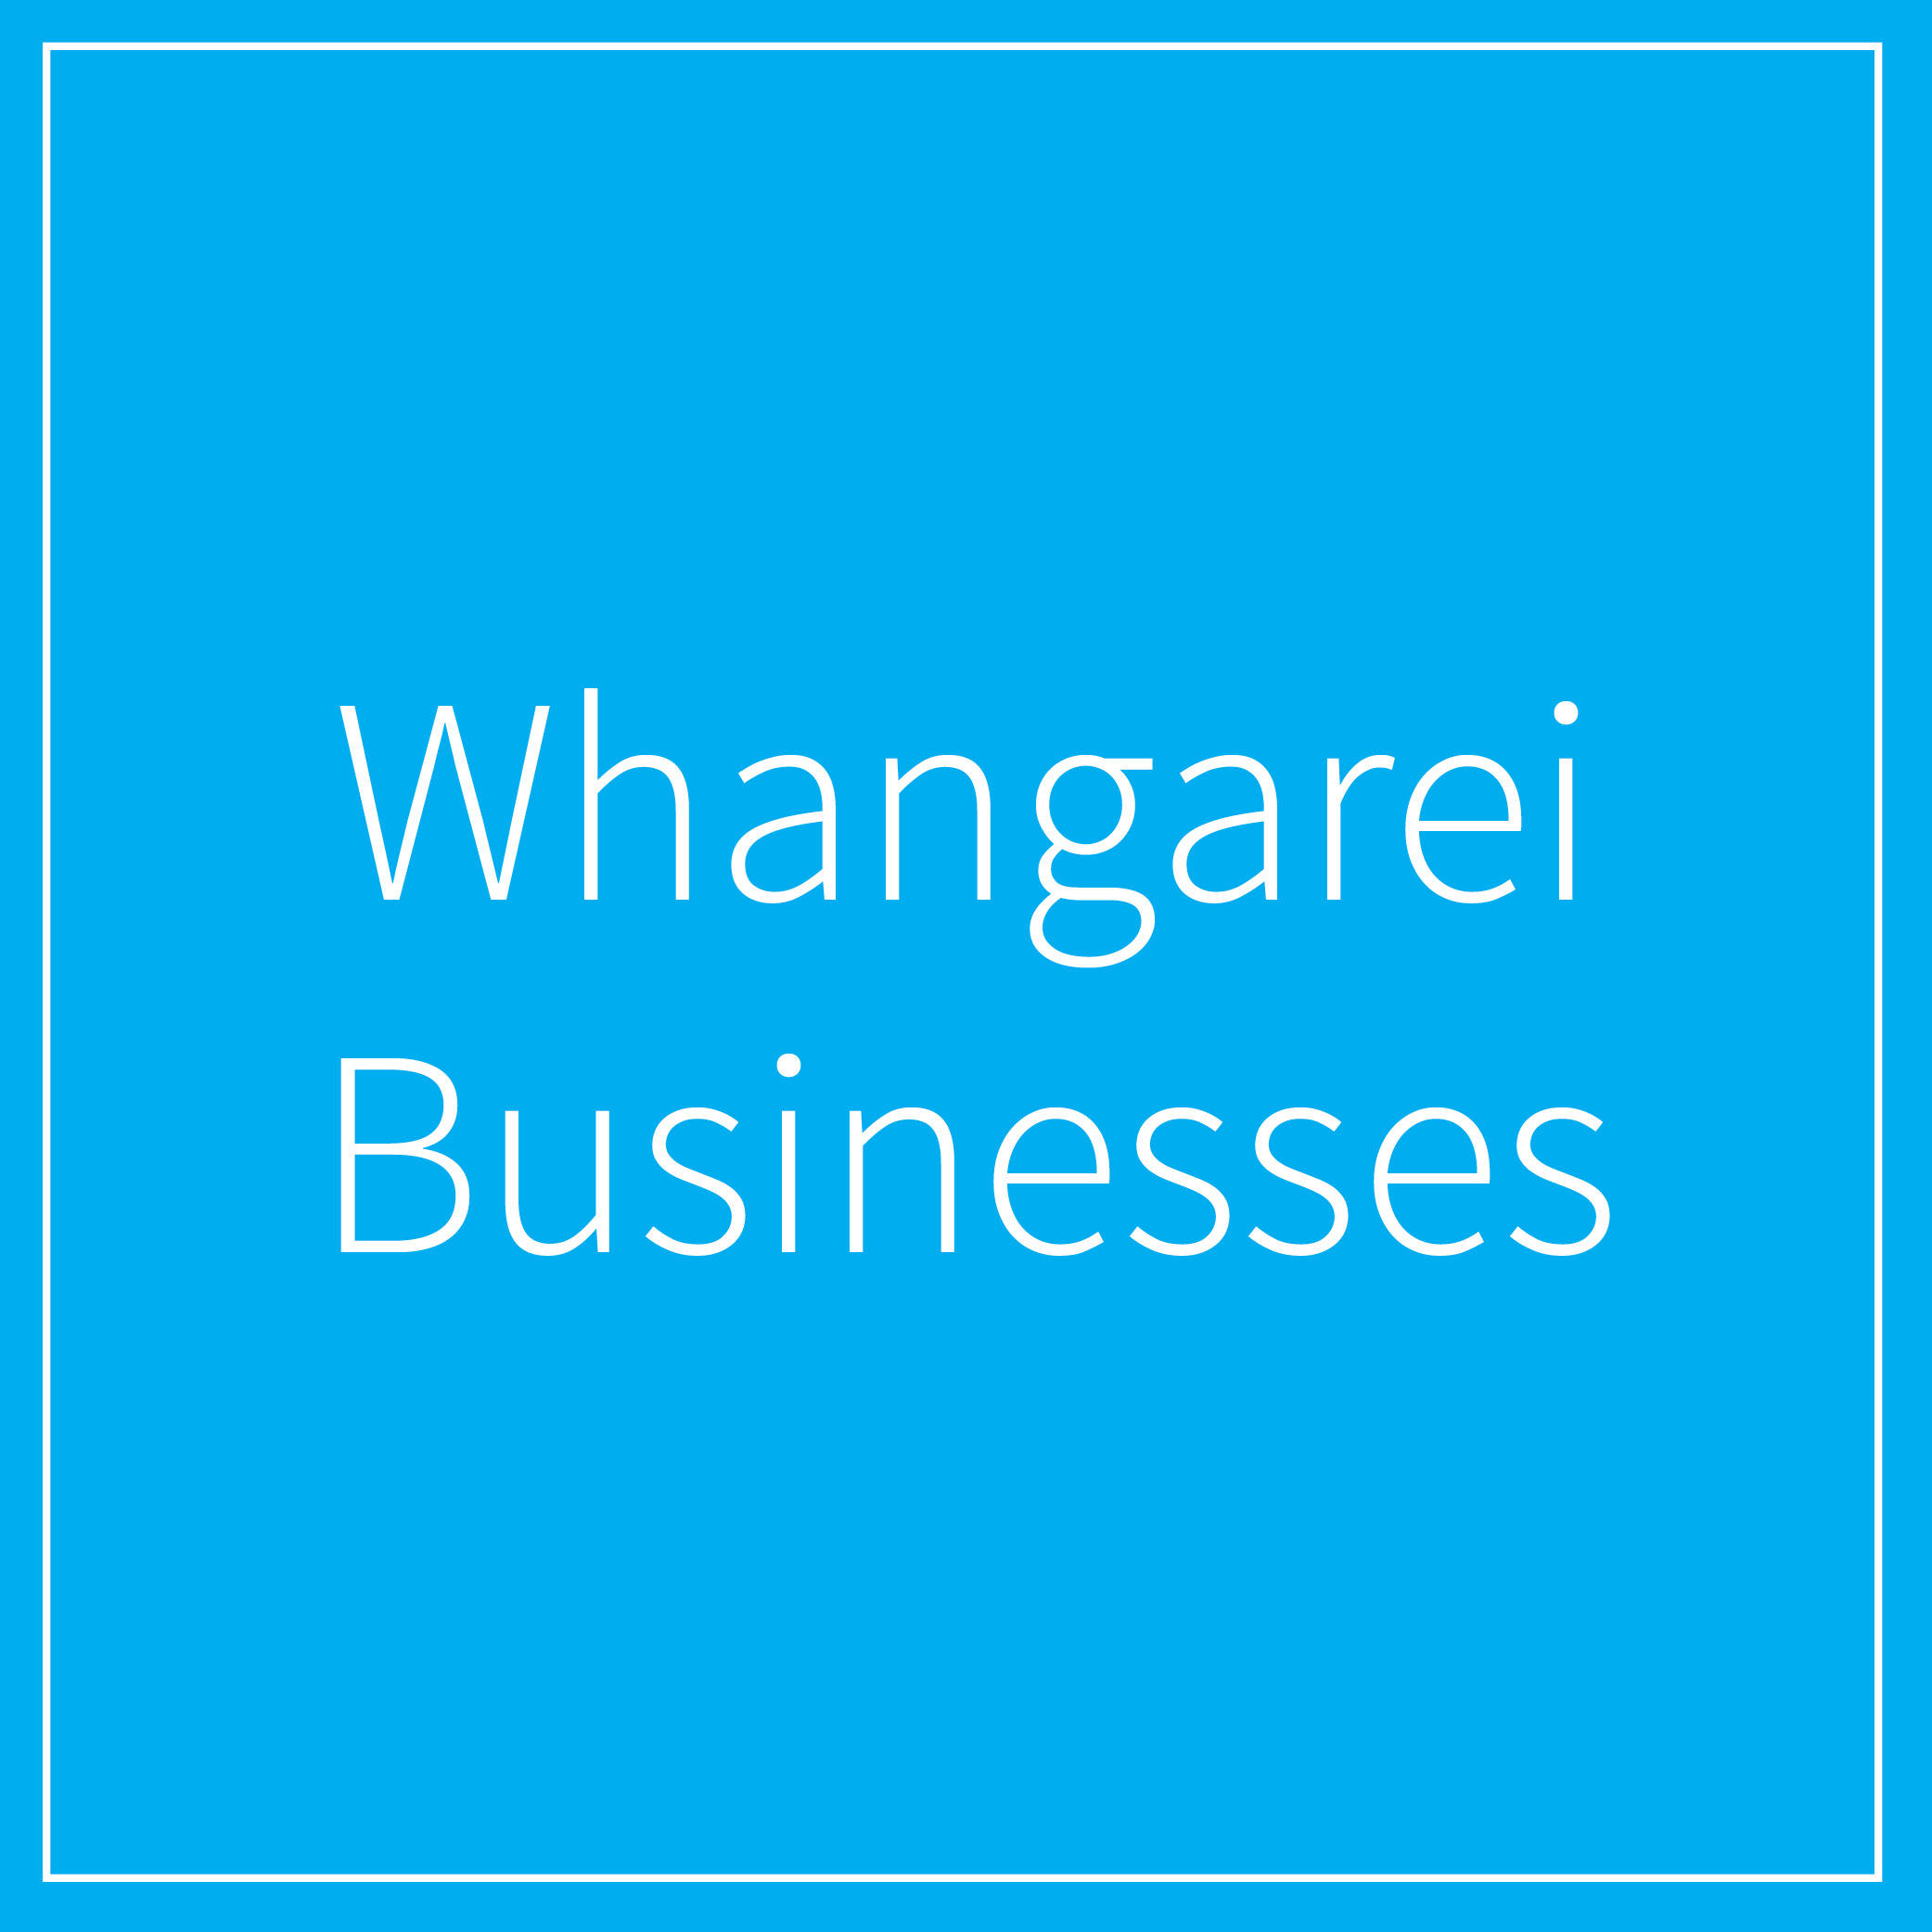 Whangarei Businesses.jpg